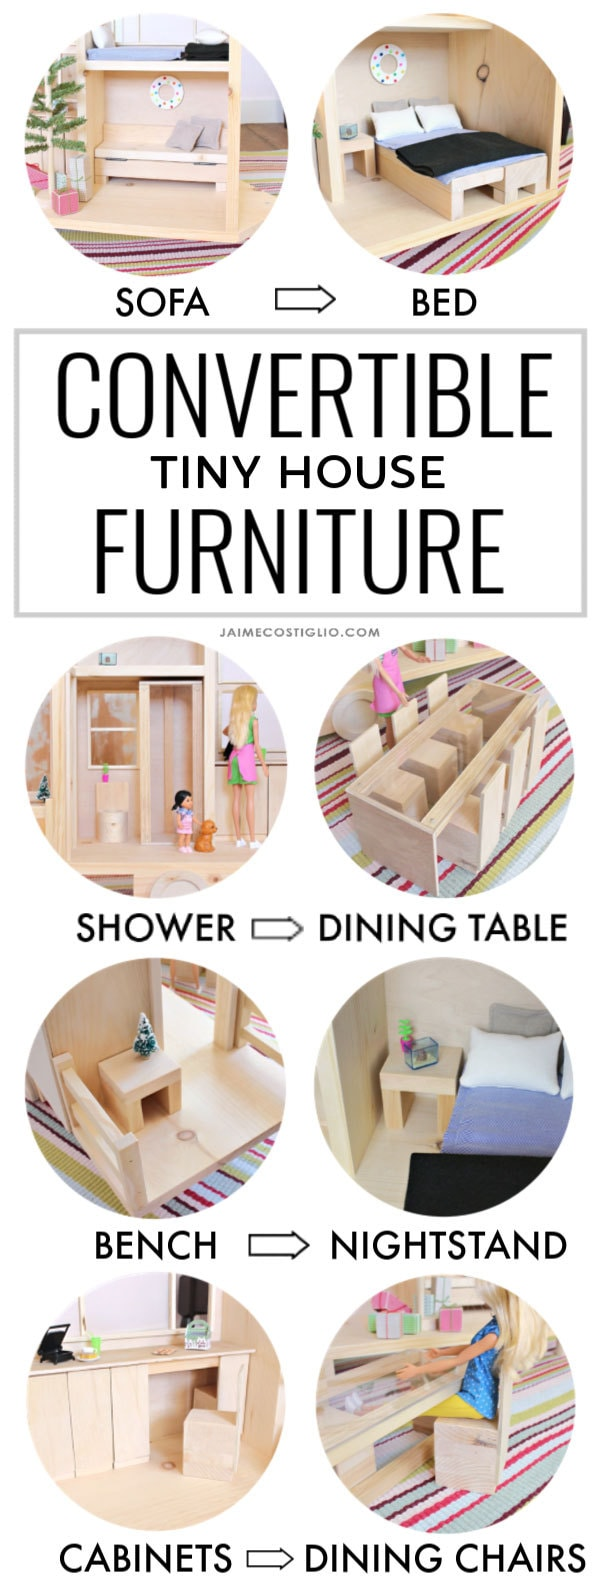 Tiny House Dollhouse Convertible Furniture